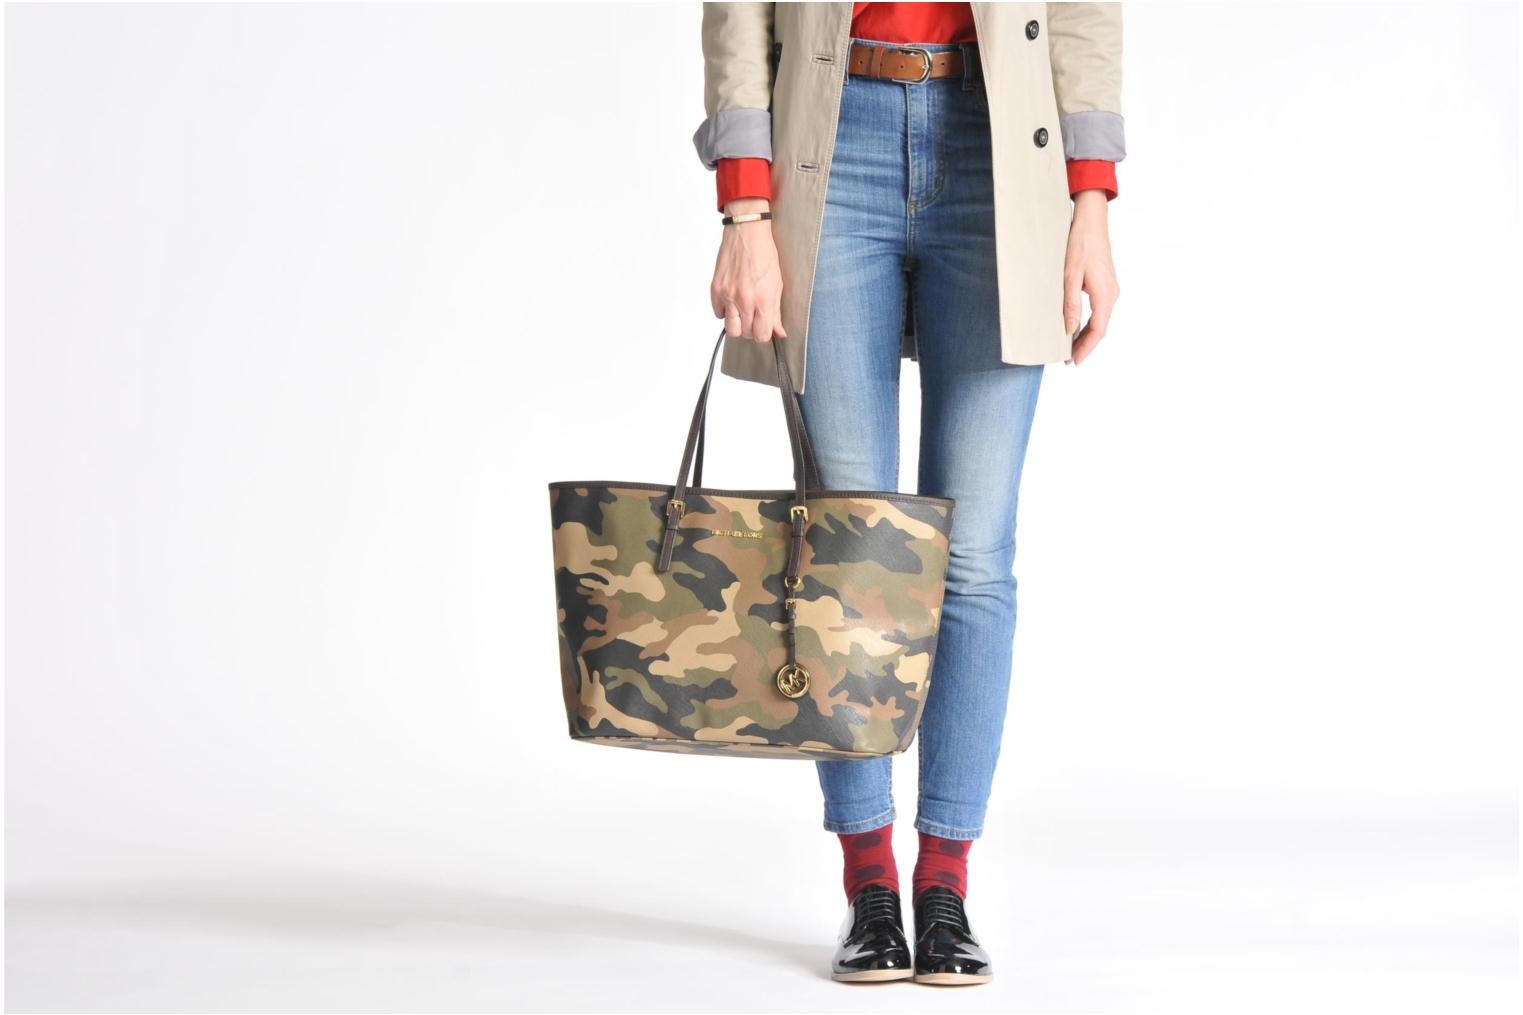 b7b361cc8abd9f michael kors camo tote sale > OFF38% Discounted